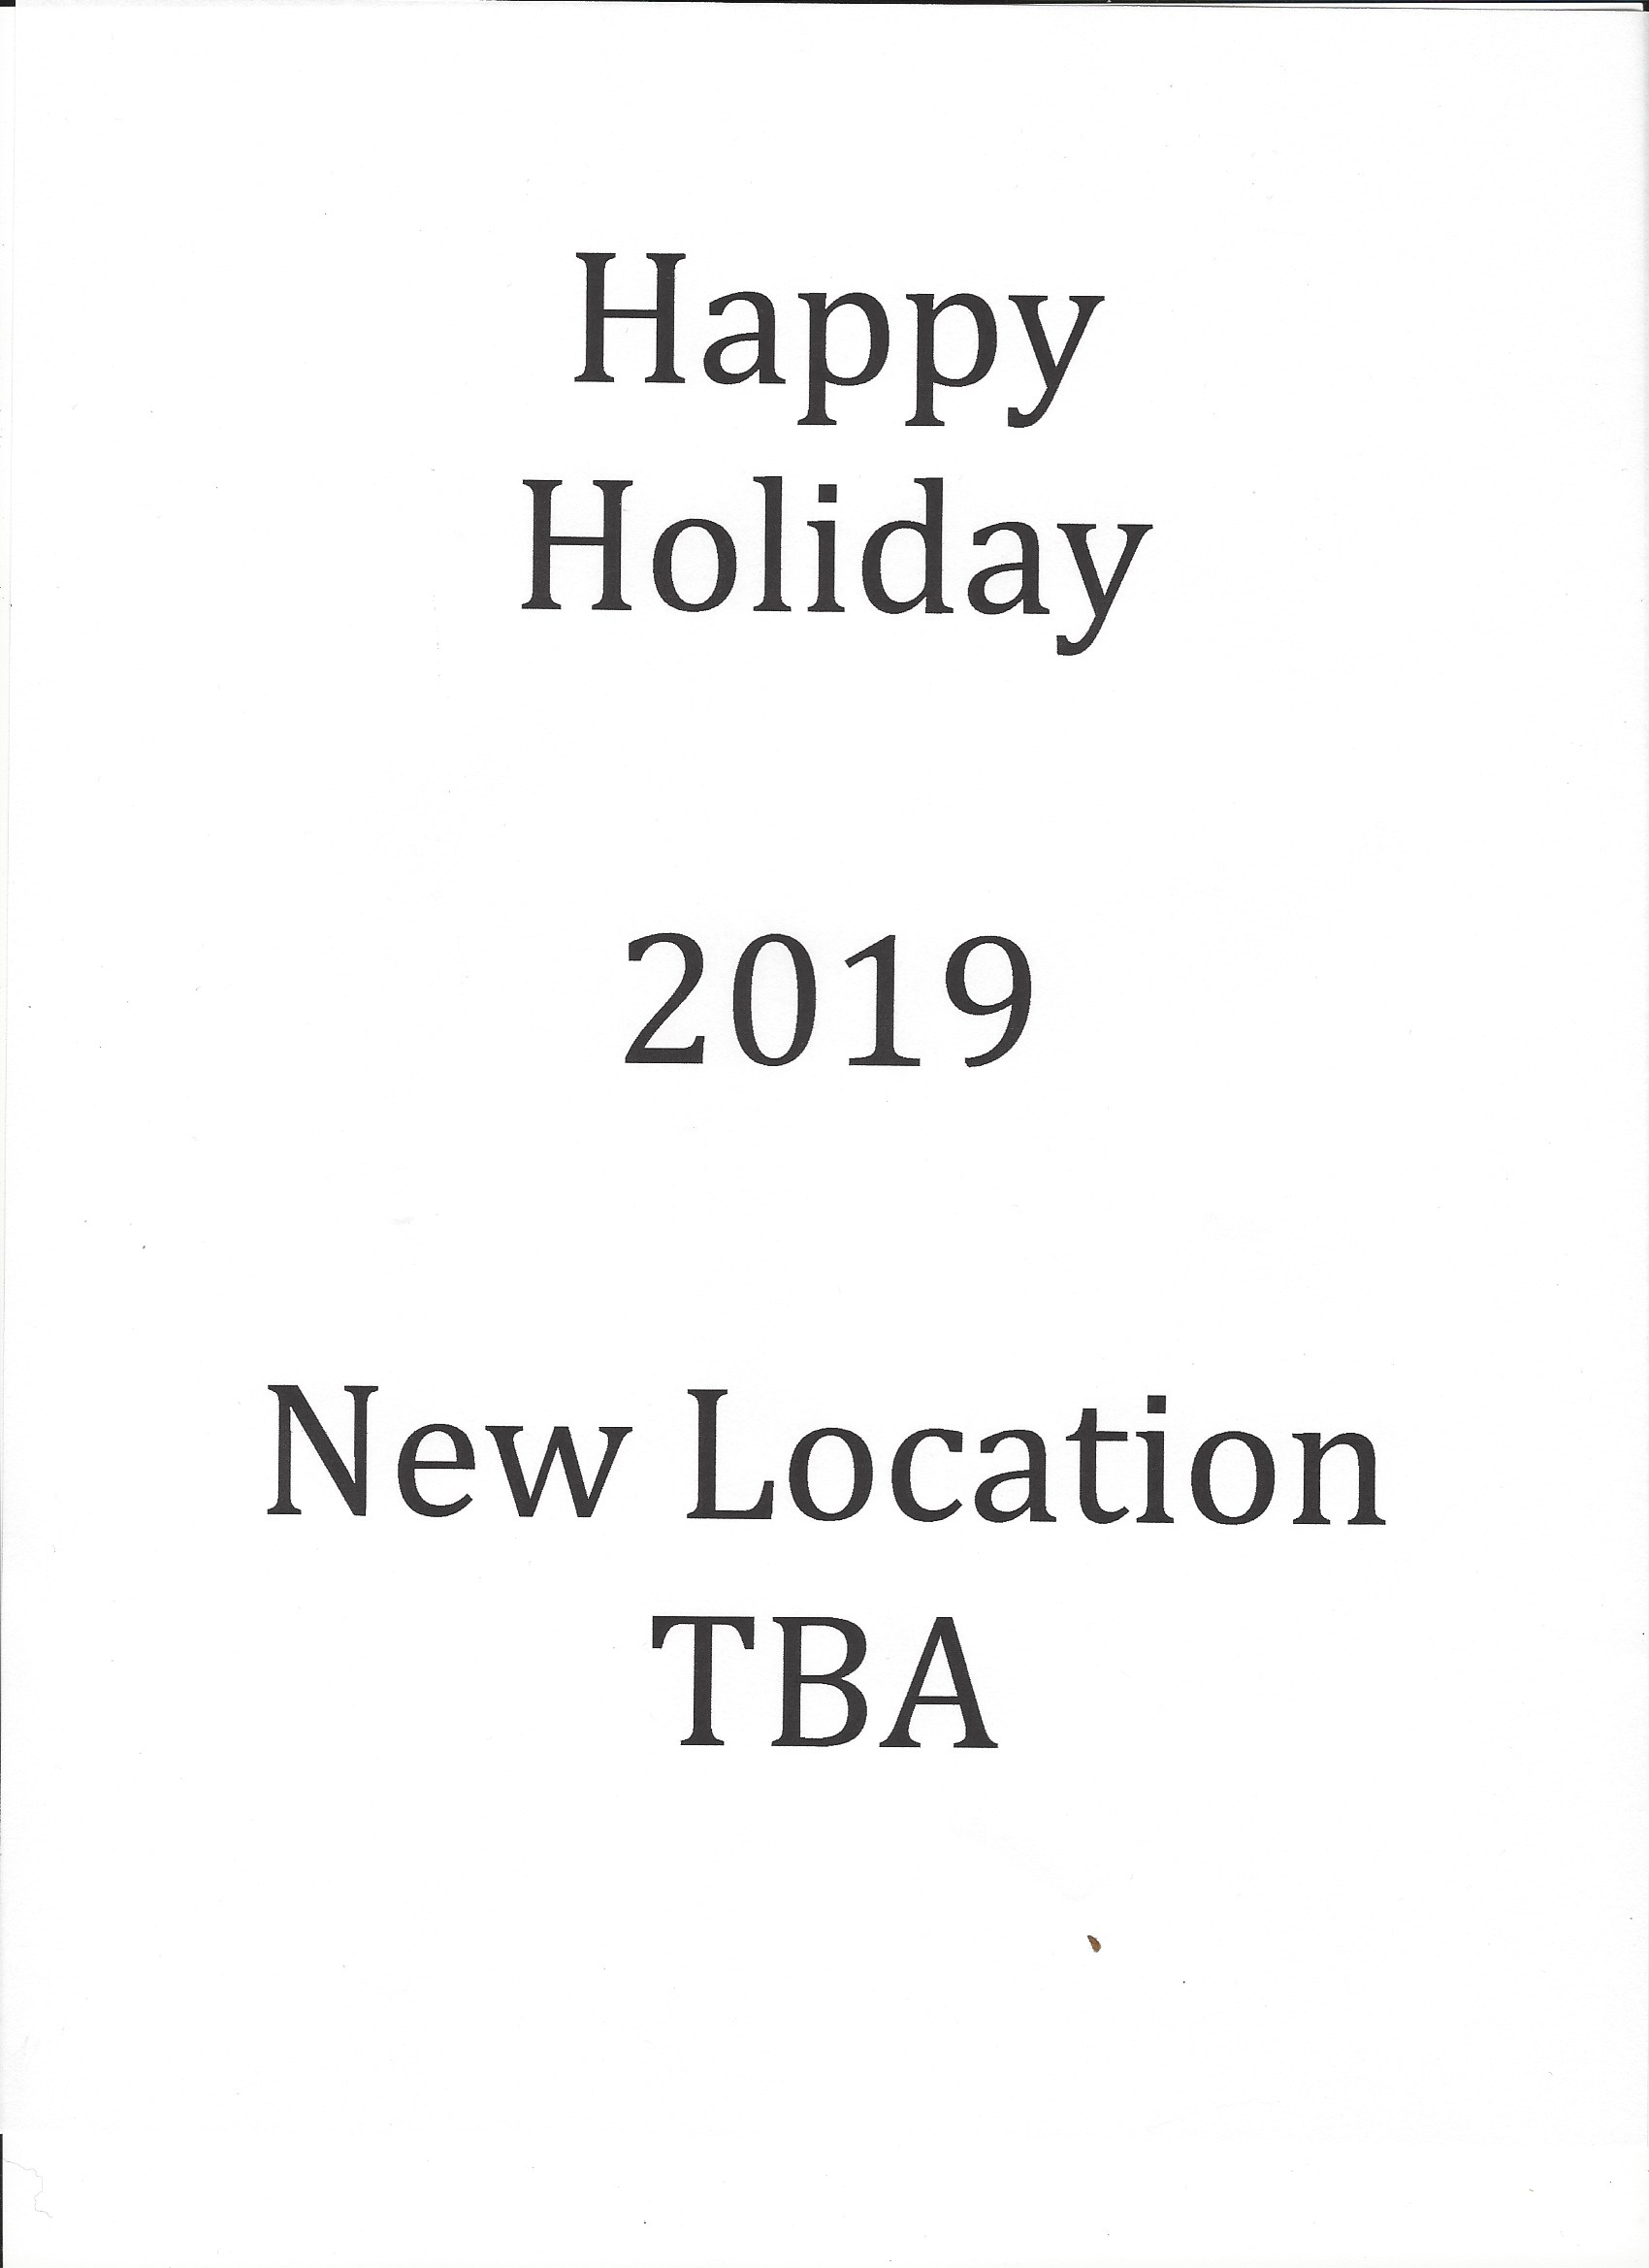 ACSD Holiday new location 2019